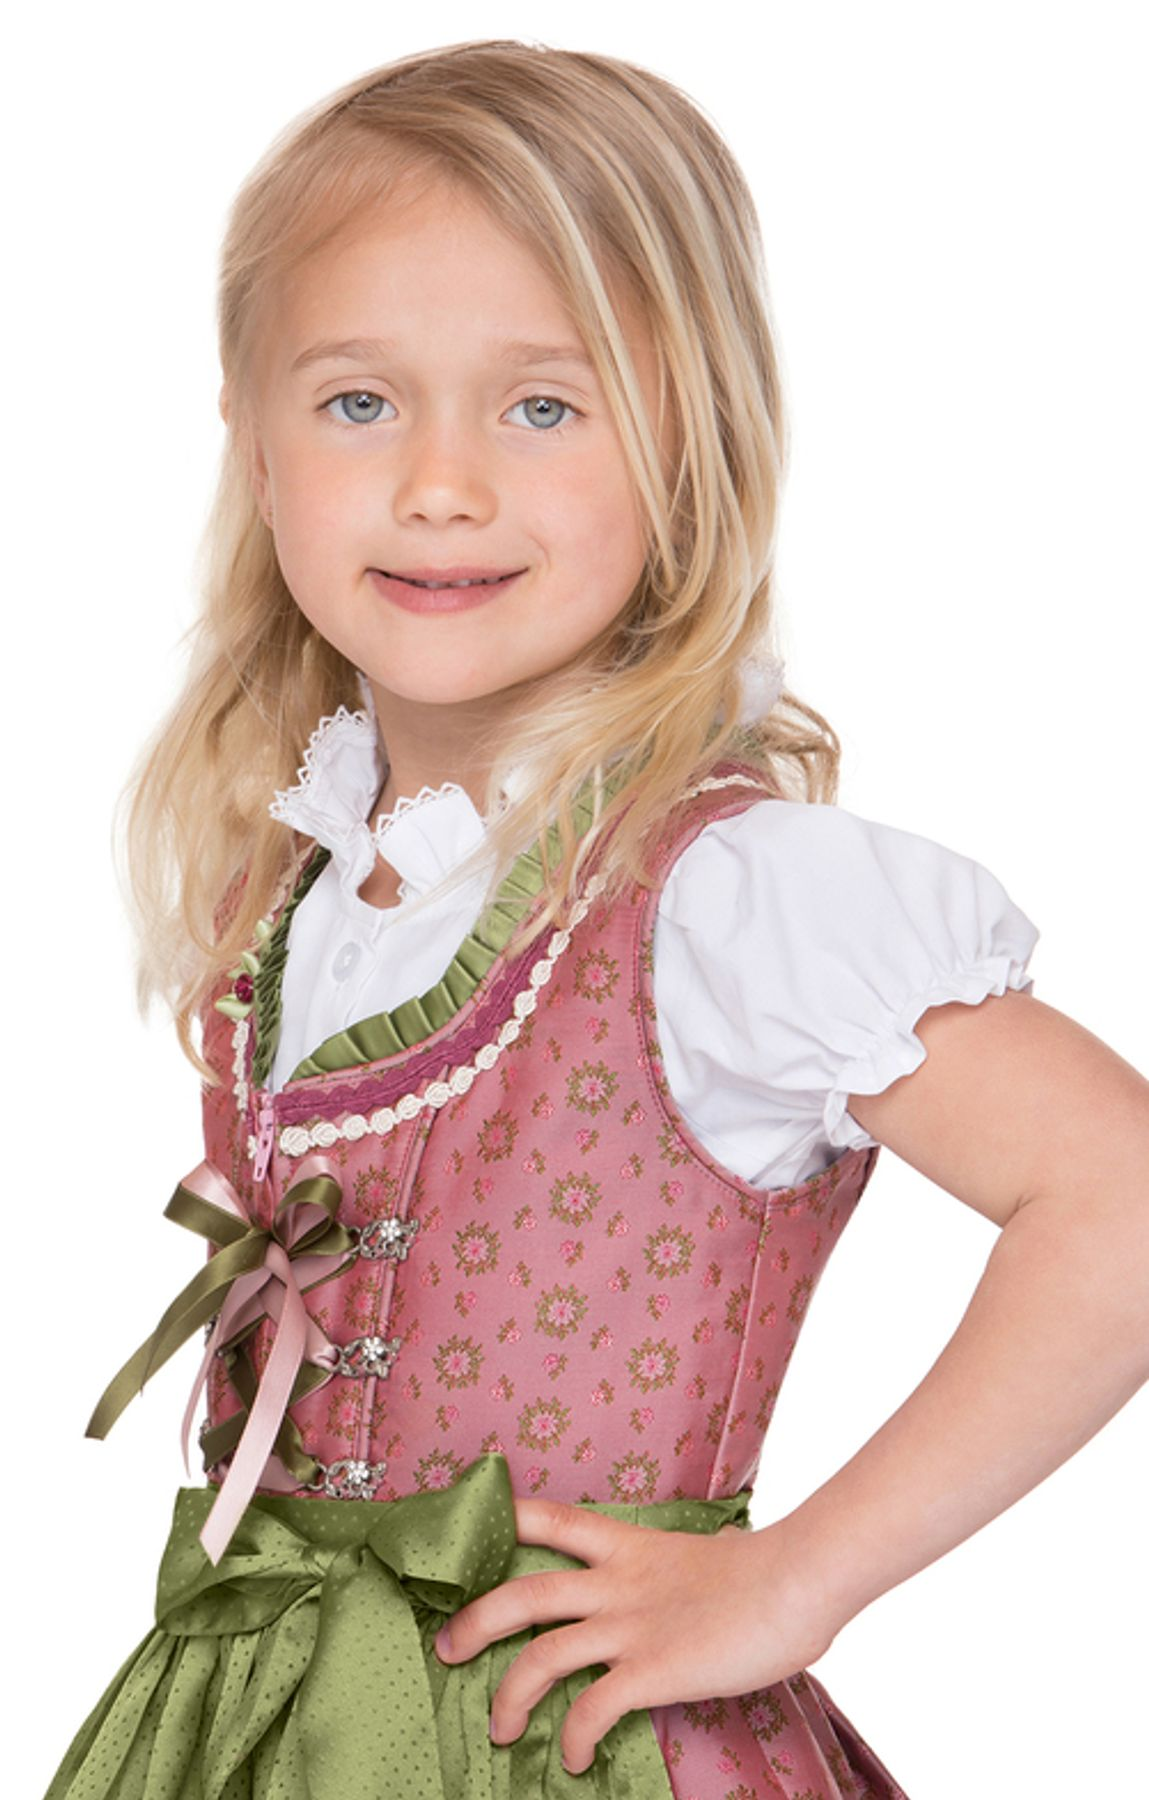 Stockerpoint - Kinder Trachten Dirndl Suki in Rose, Gr. 86-116 – Bild 3